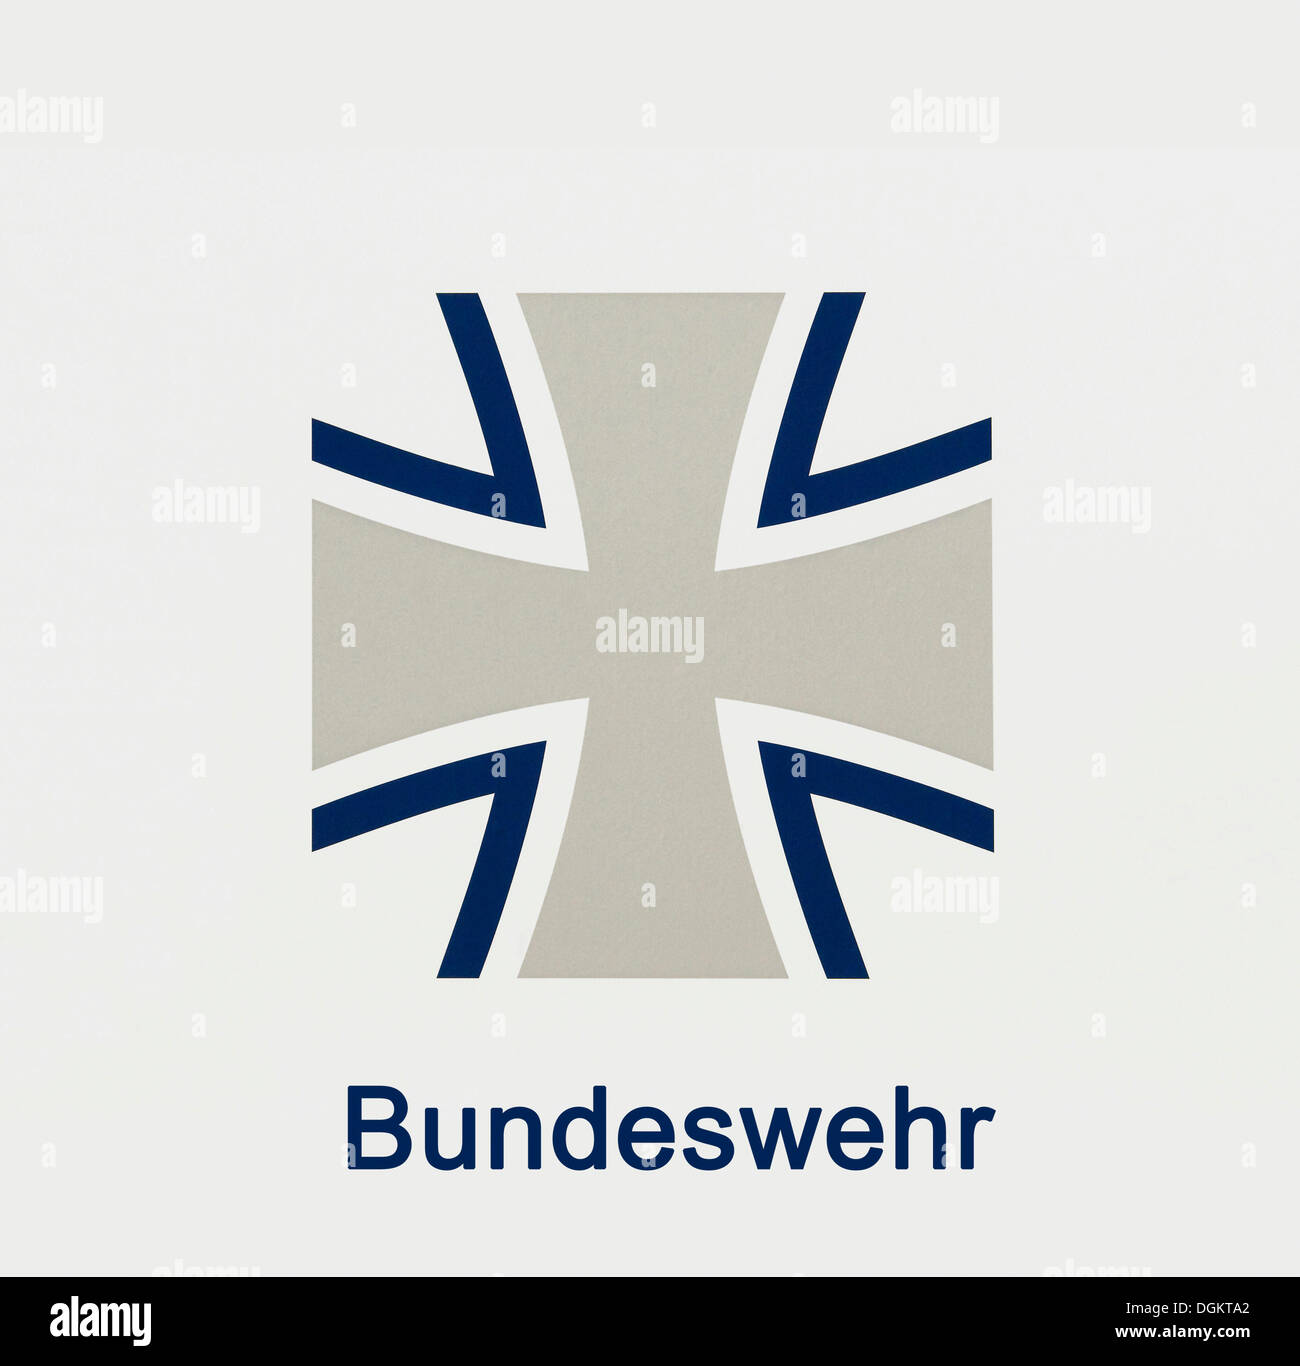 Emblem of the Bundeswehr, German federal army, stylised cross with Bundeswehr lettering - Stock Image